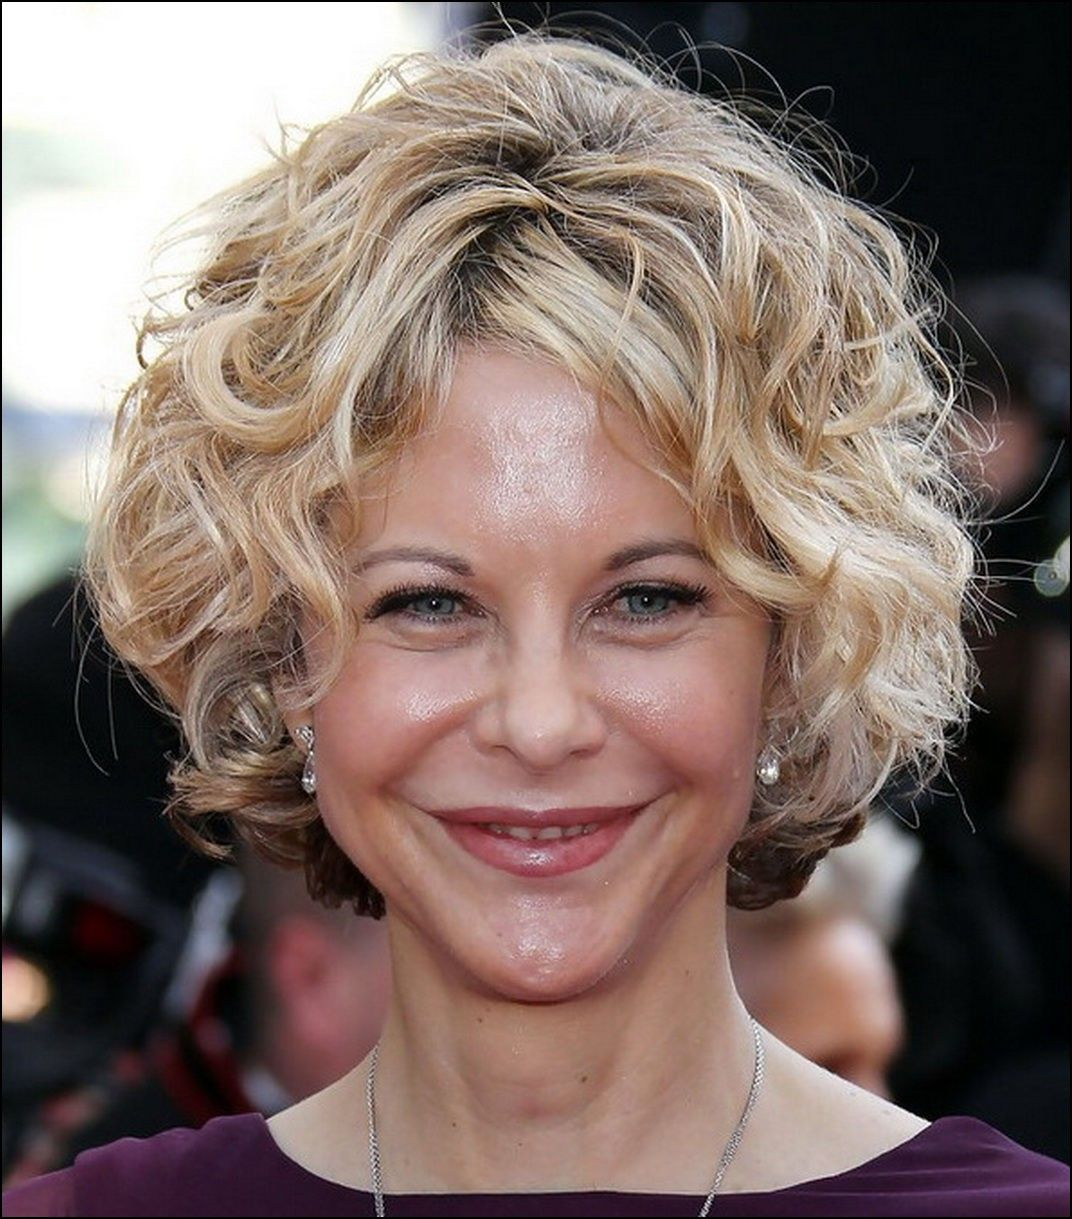 Short hairstyles for older women with curly hair hairstyles ideas